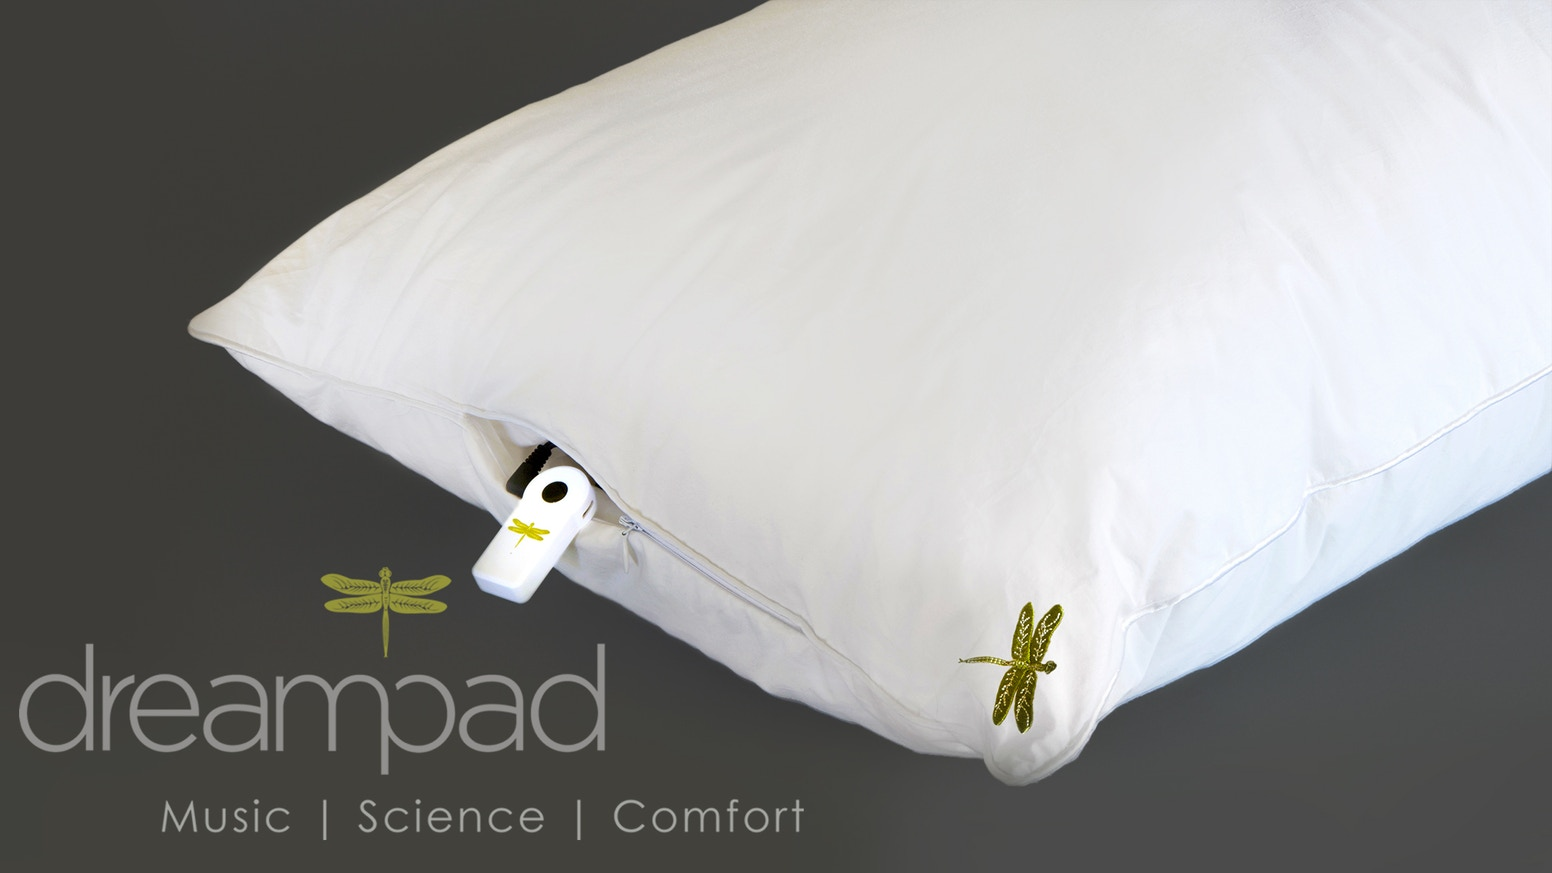 Dreampad Pillow: Reduce Stress  Improve Sleep  Guaranteed